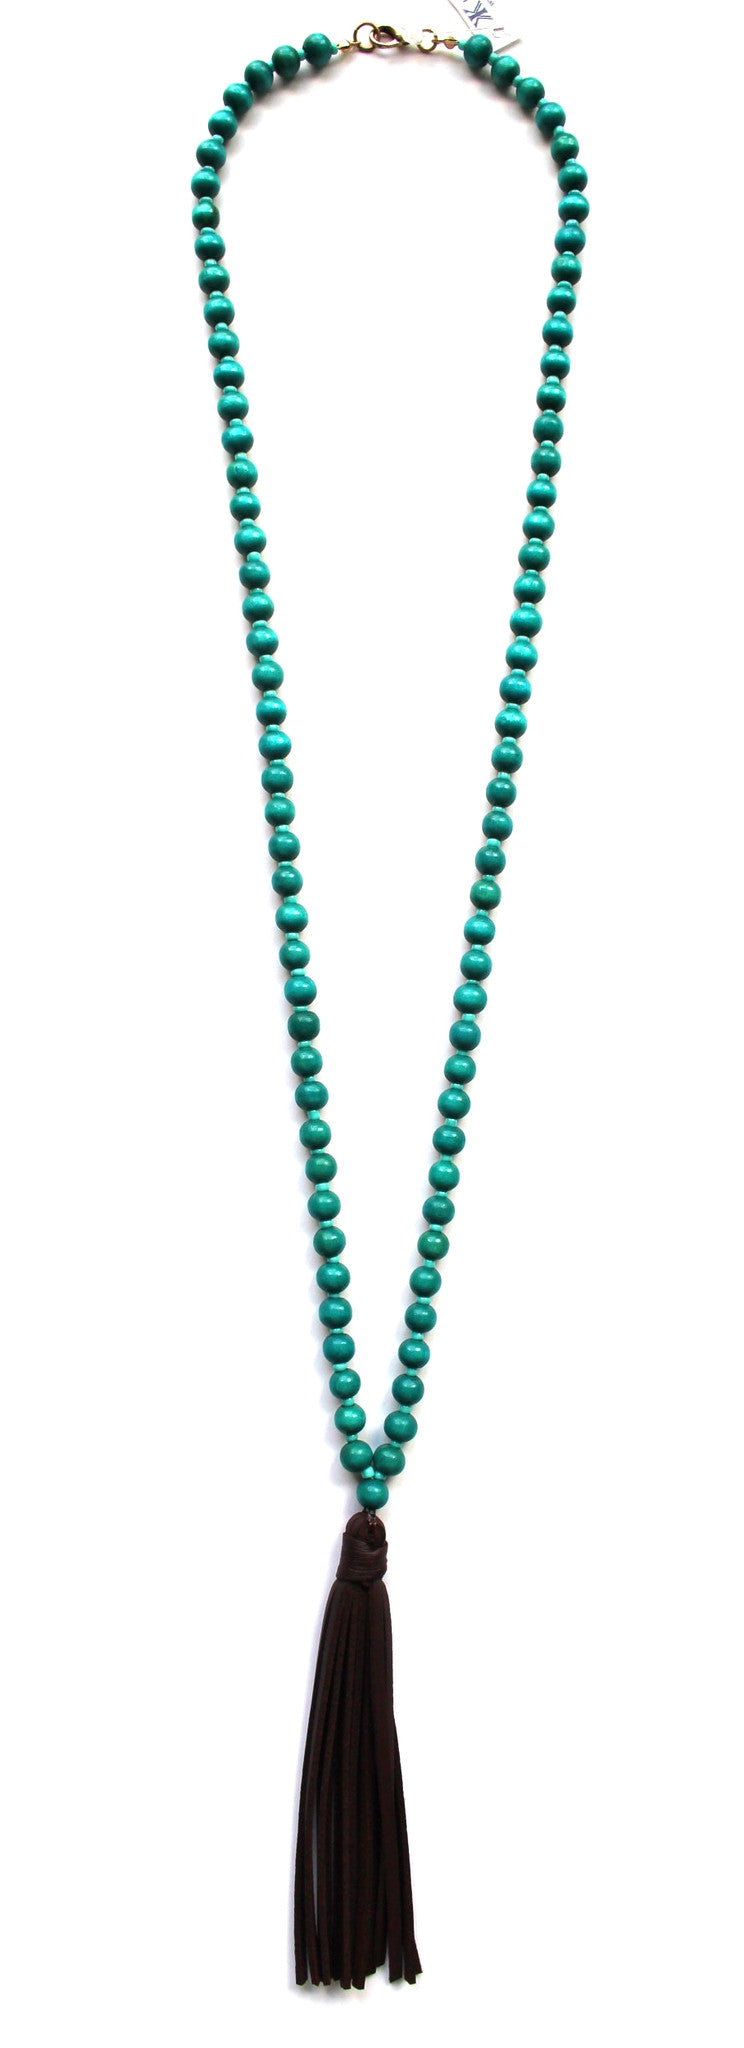 Beaded Leather Tassel Long Necklace- Turquoise